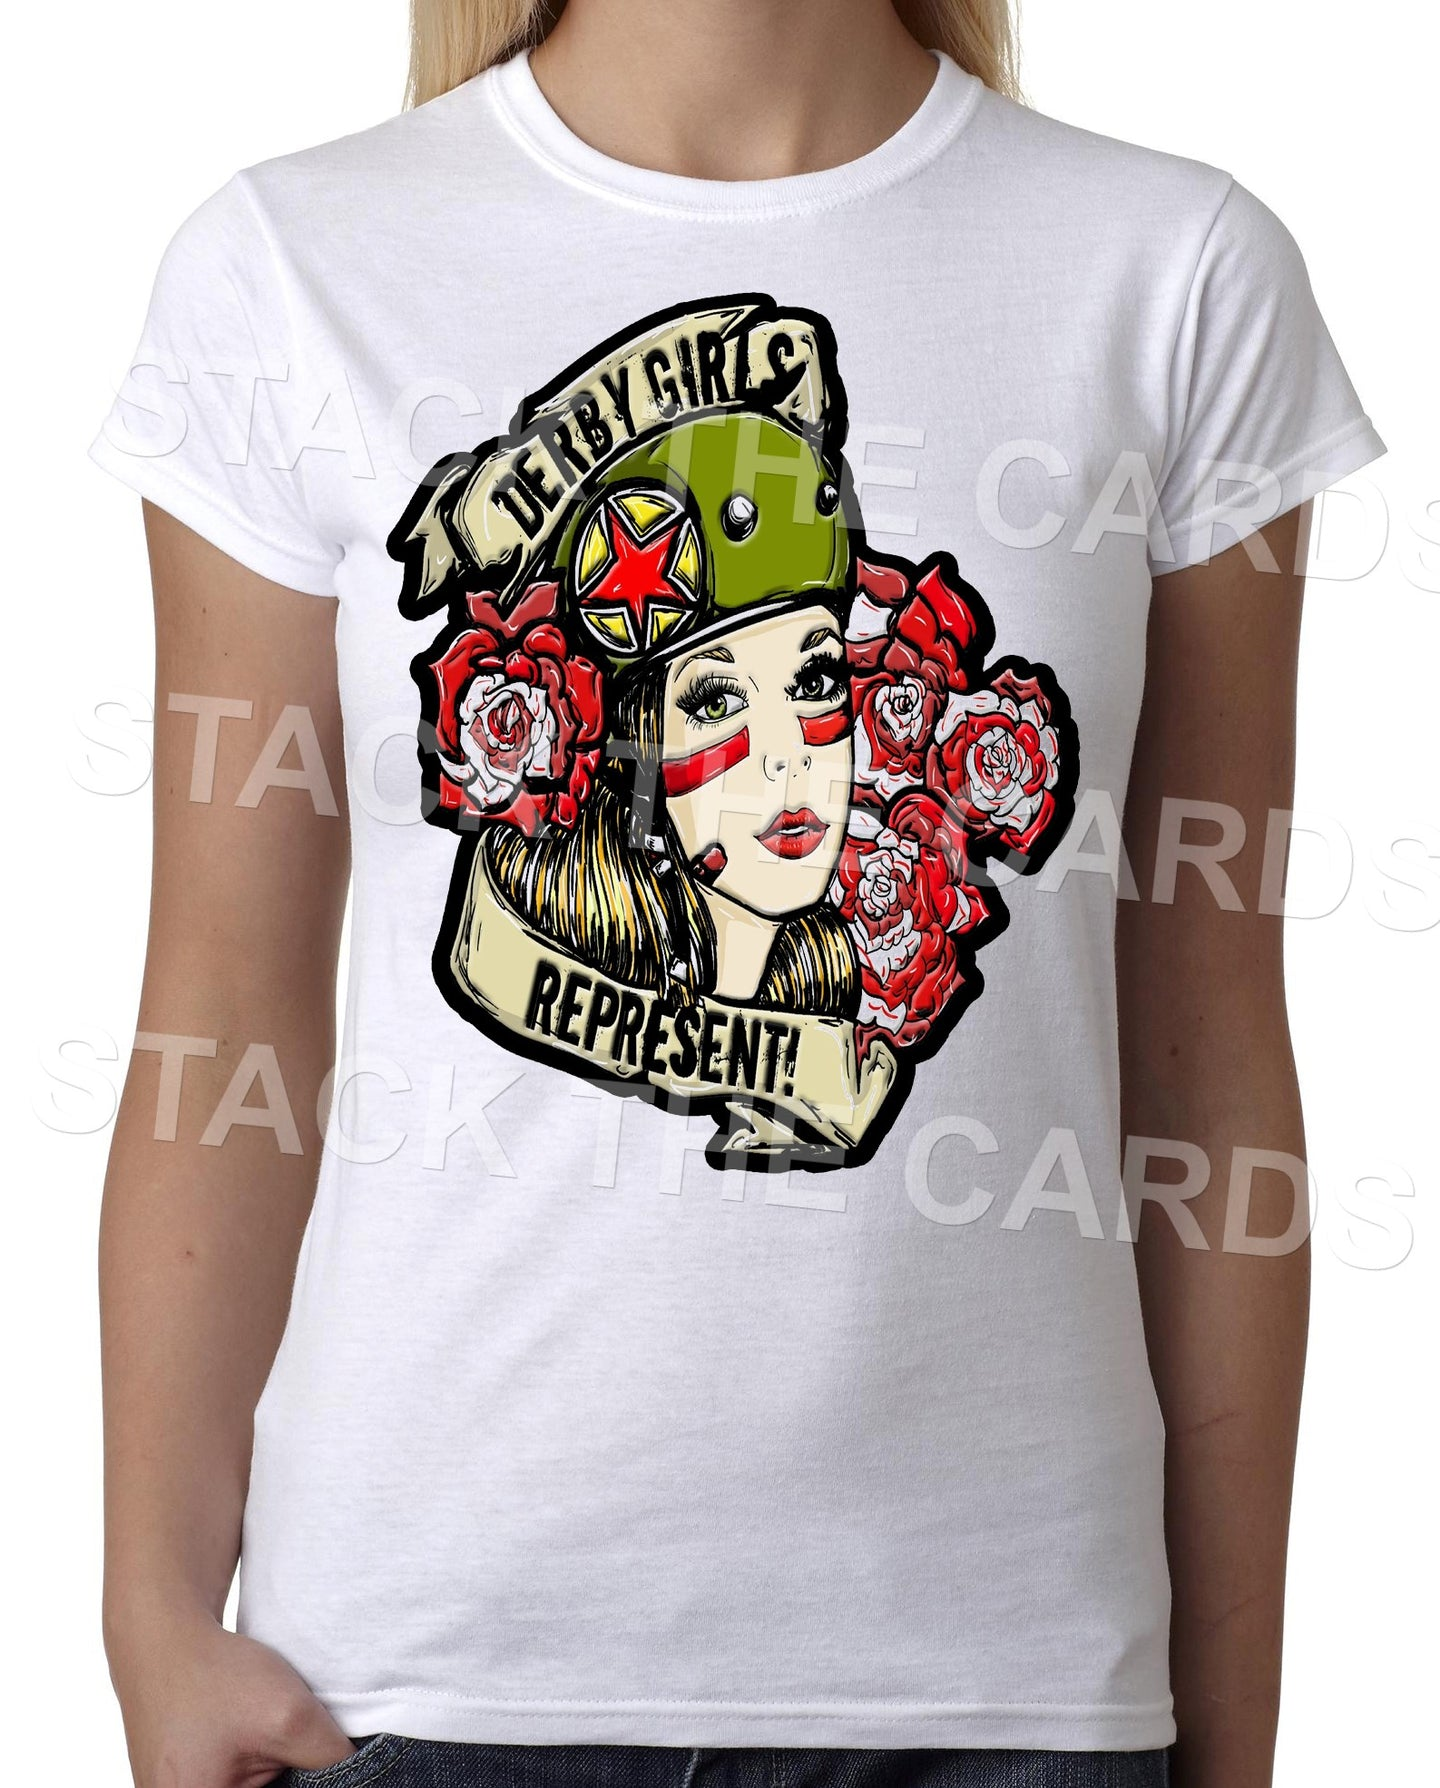 Roller Derby Girls Represent - Womens White T-Shirt - Geek Retro Fun Kitsch Cute - Stack The Cards - [variant_title]